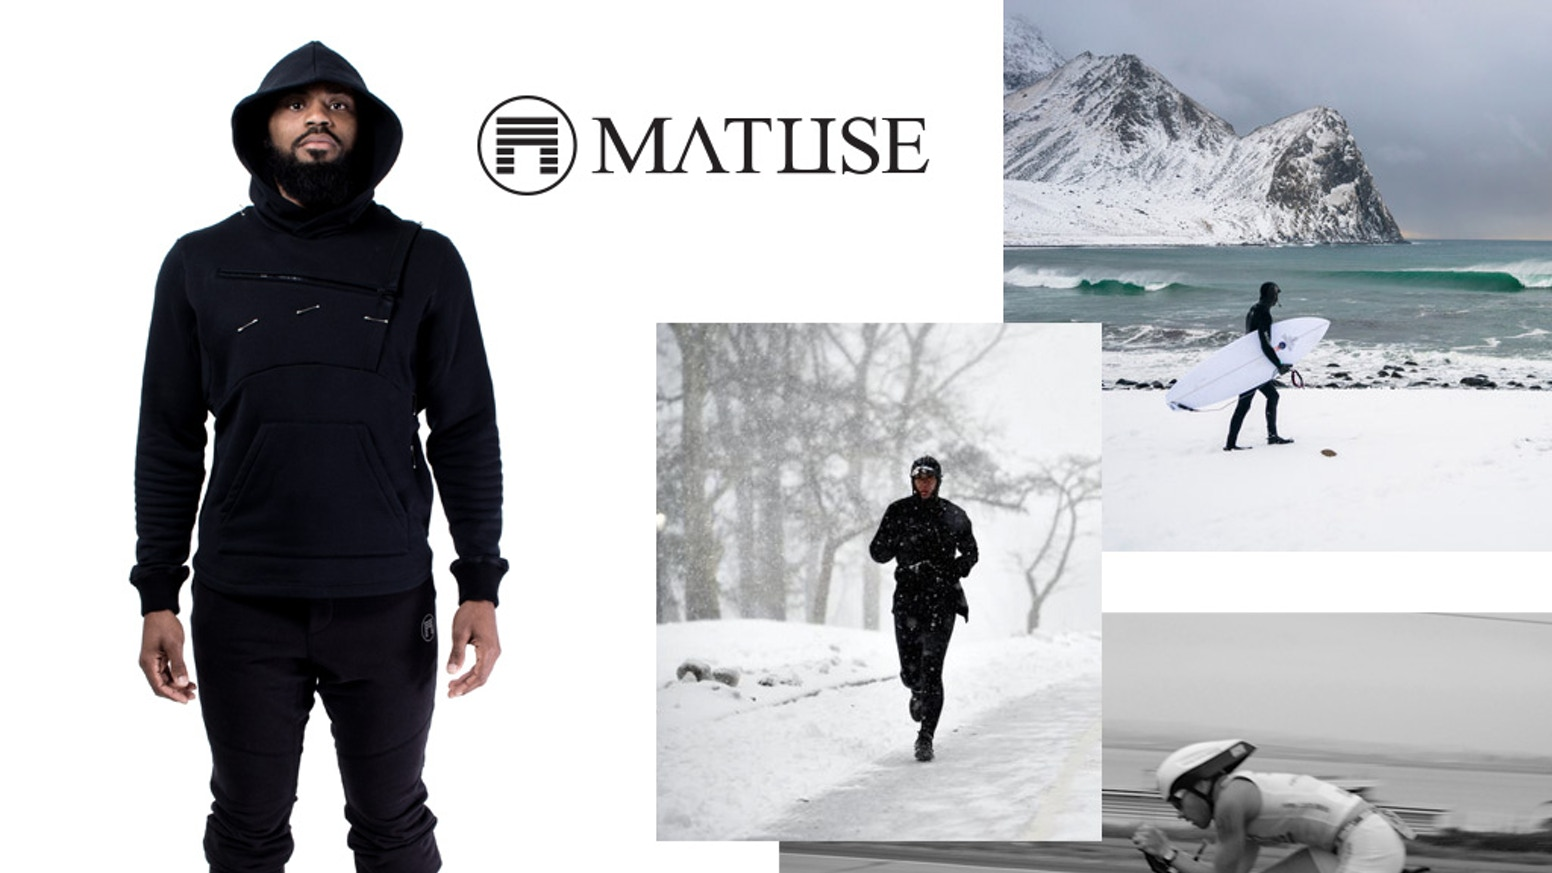 Surf and Sport Tactical Active wear; perfectly suited for running through a New England blizzard or wearing post winter surf sessions.